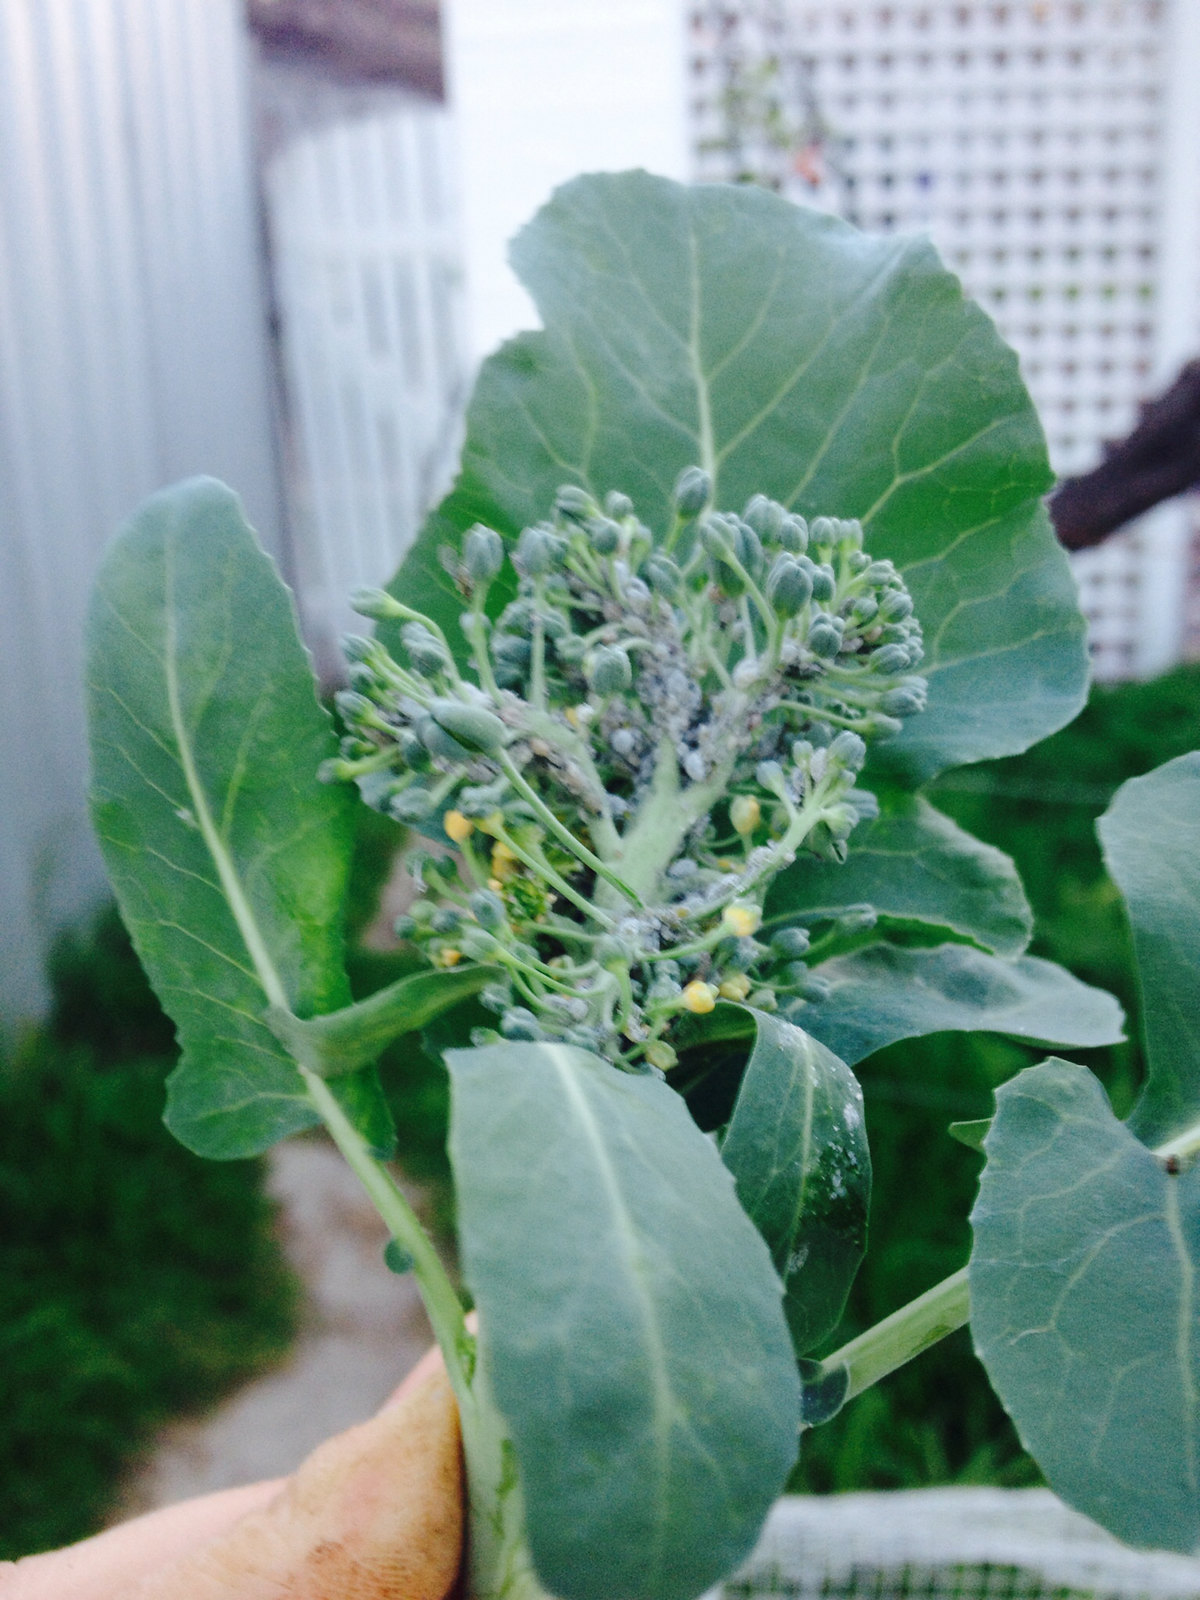 #Aphids on broccoli #pests #garden